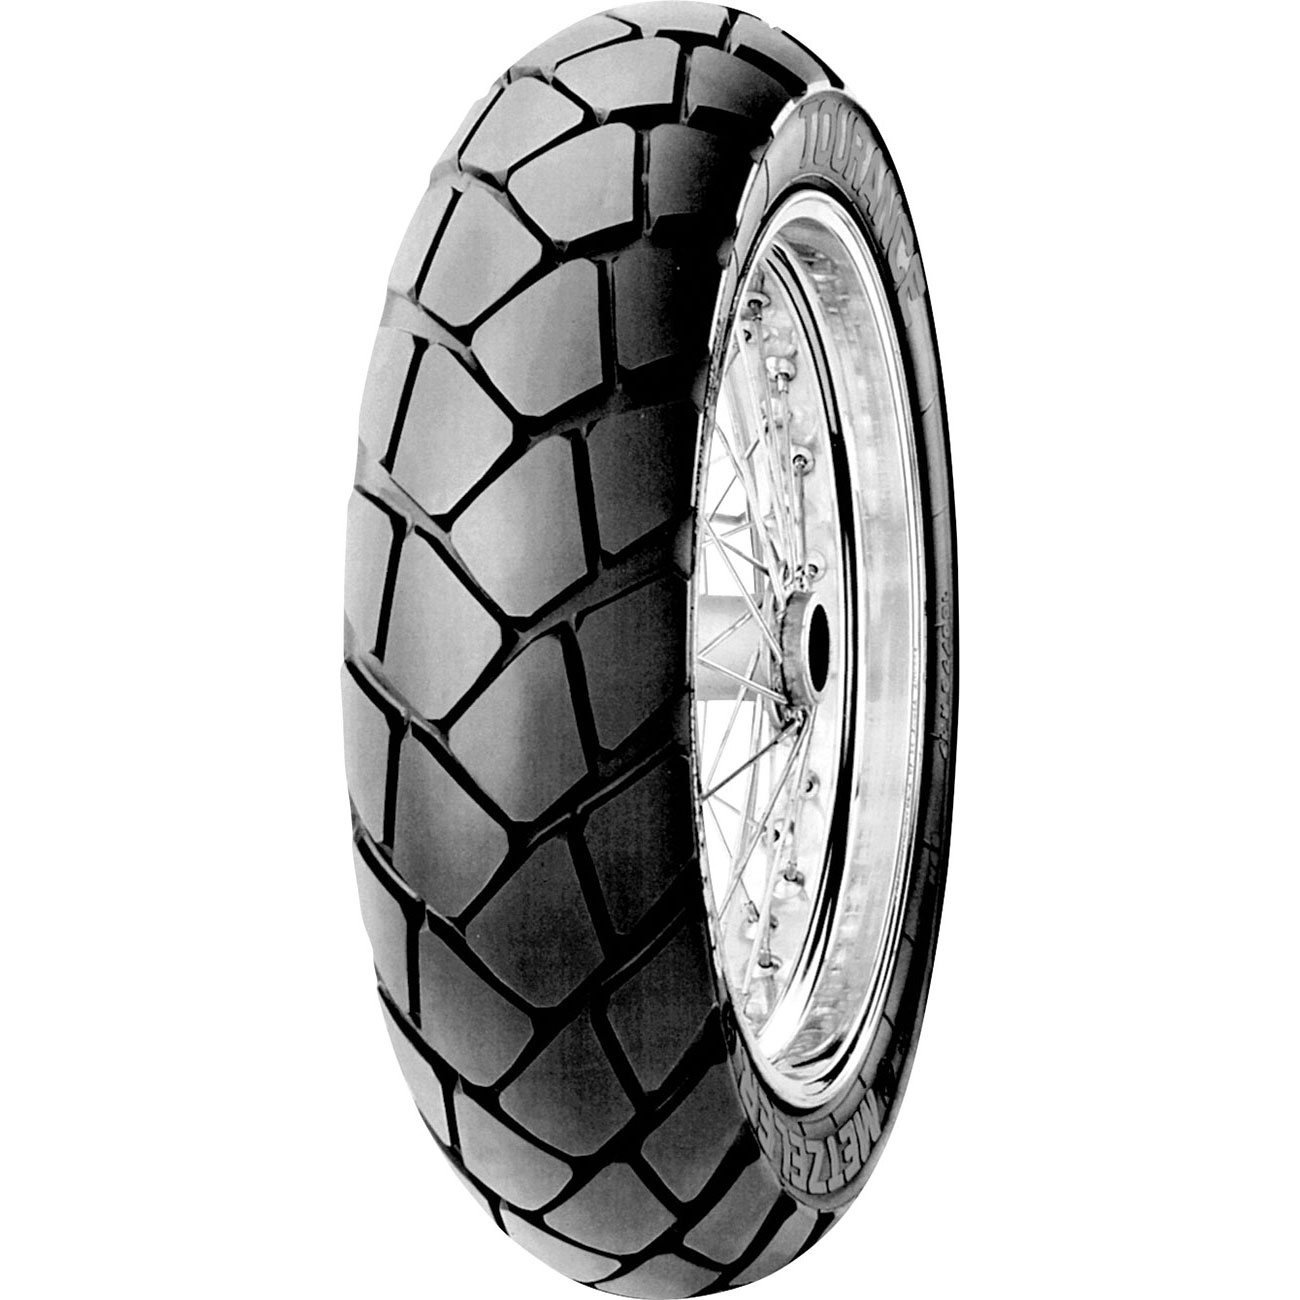 Metzeler Tourance 150 70 R17 69v Tubeless Tyre Rear Car 110 17 Motorbike